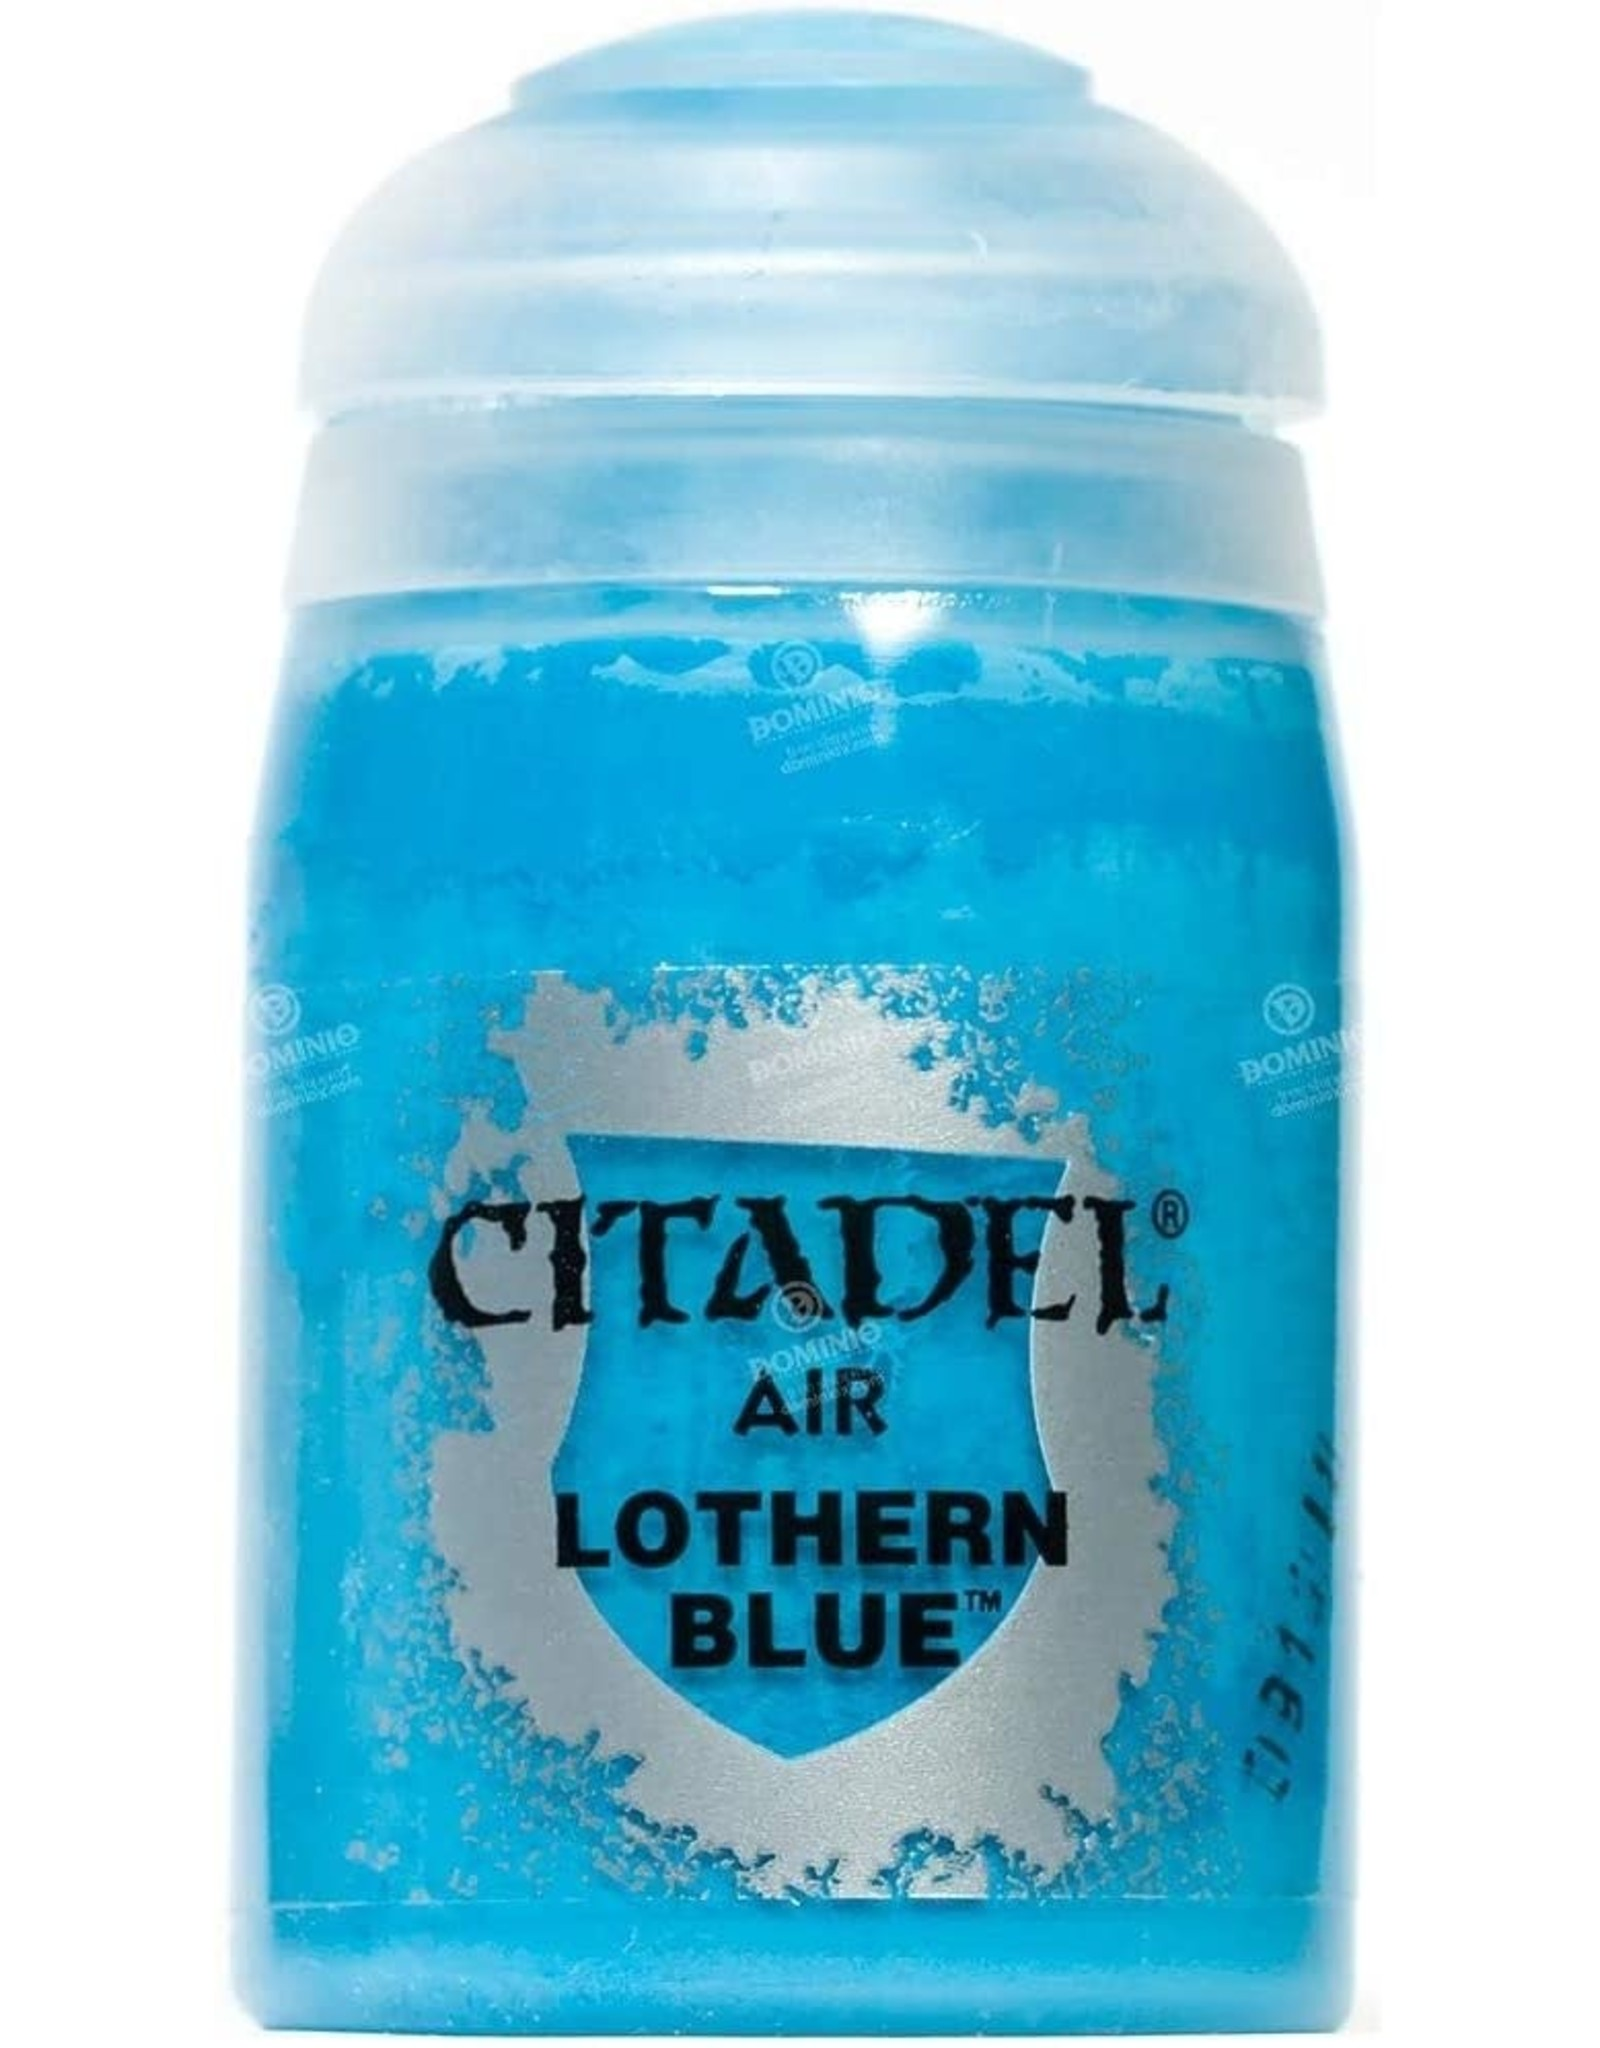 Games Workshop Citadel Paint: Lothern Blue Air (24 ml)